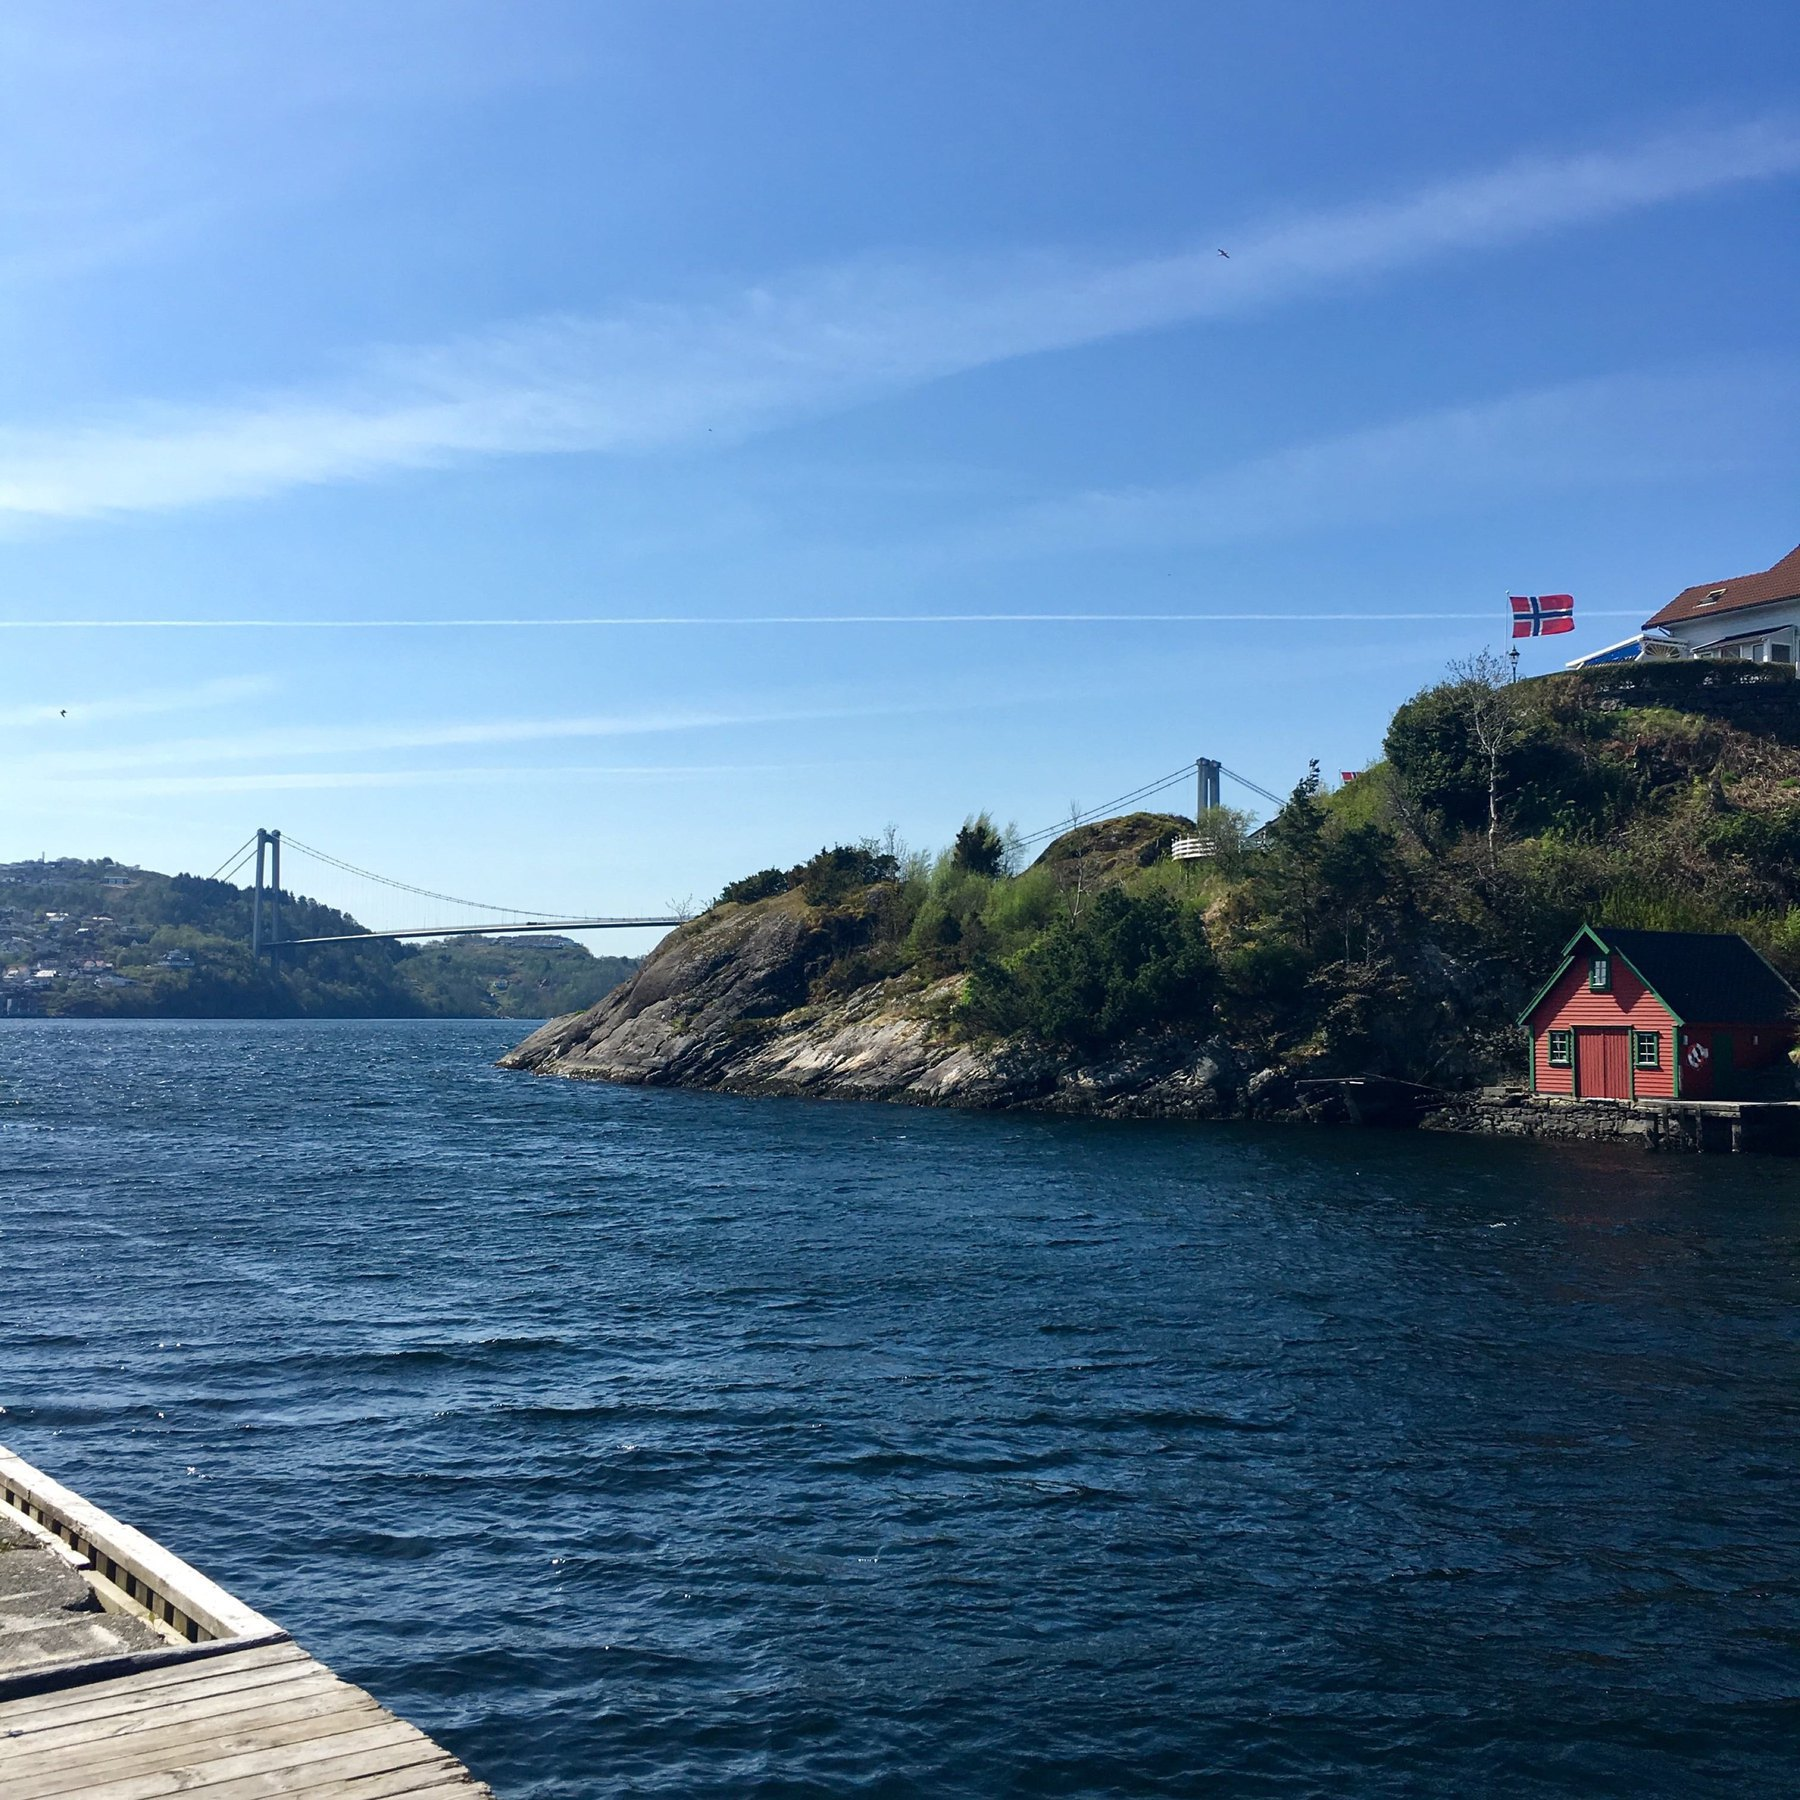 Ocean view with the Askøy bridge in the background